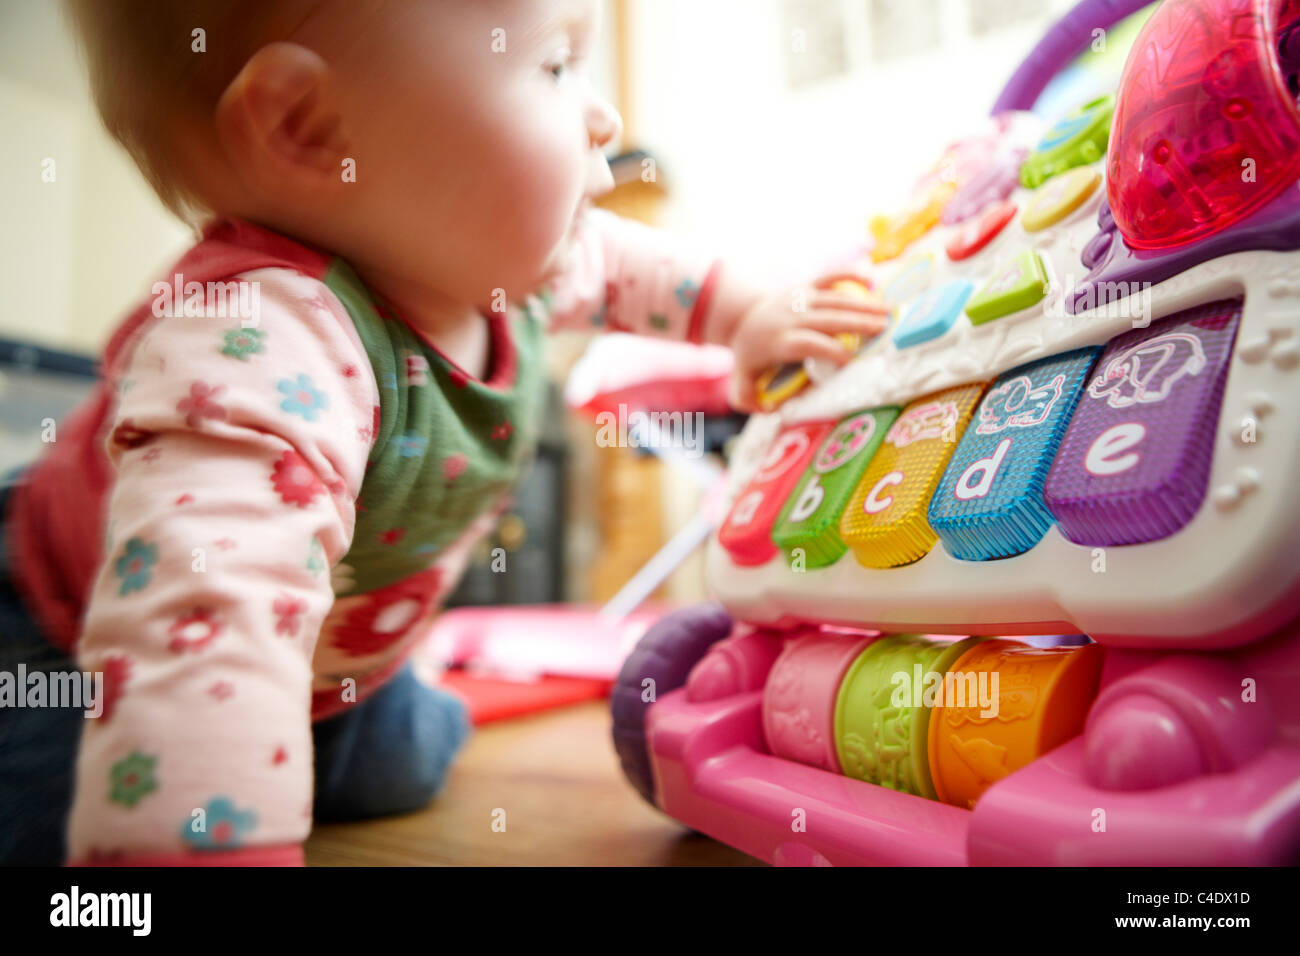 8 Month Old Baby Girl Playing With Toys Stock Photo 37185161 Alamy